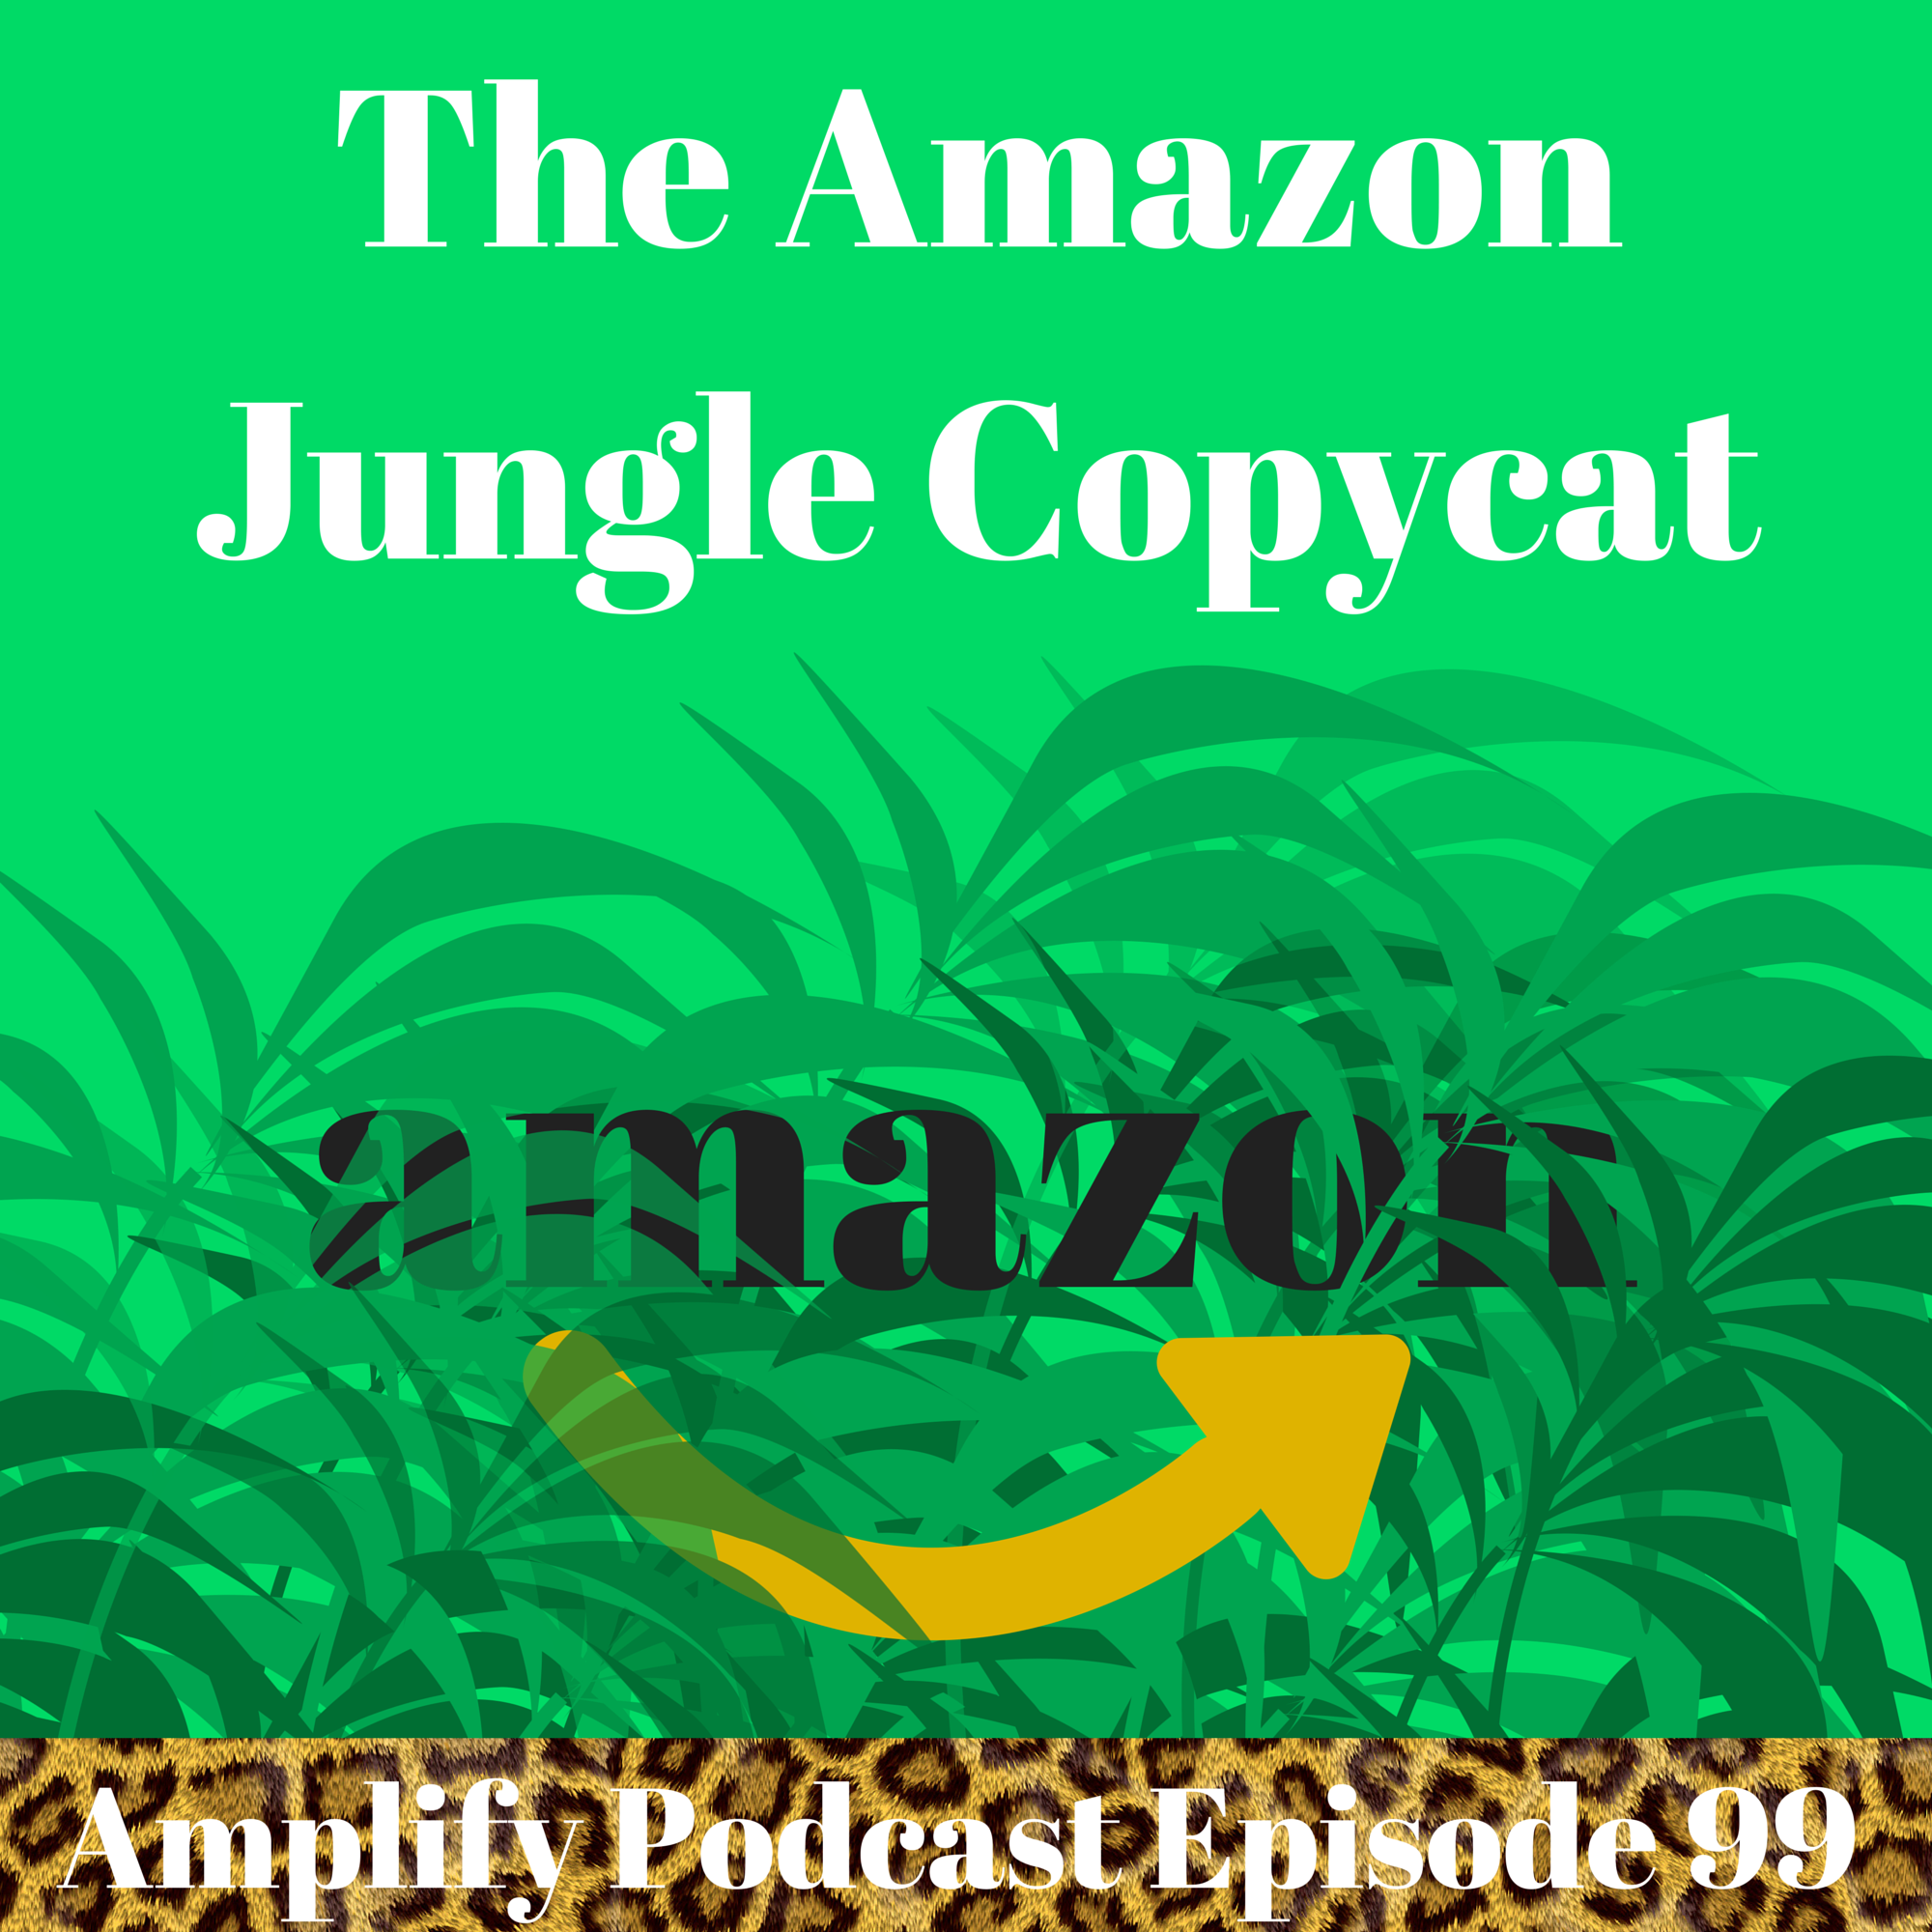 The Amazon Jungle Copycat